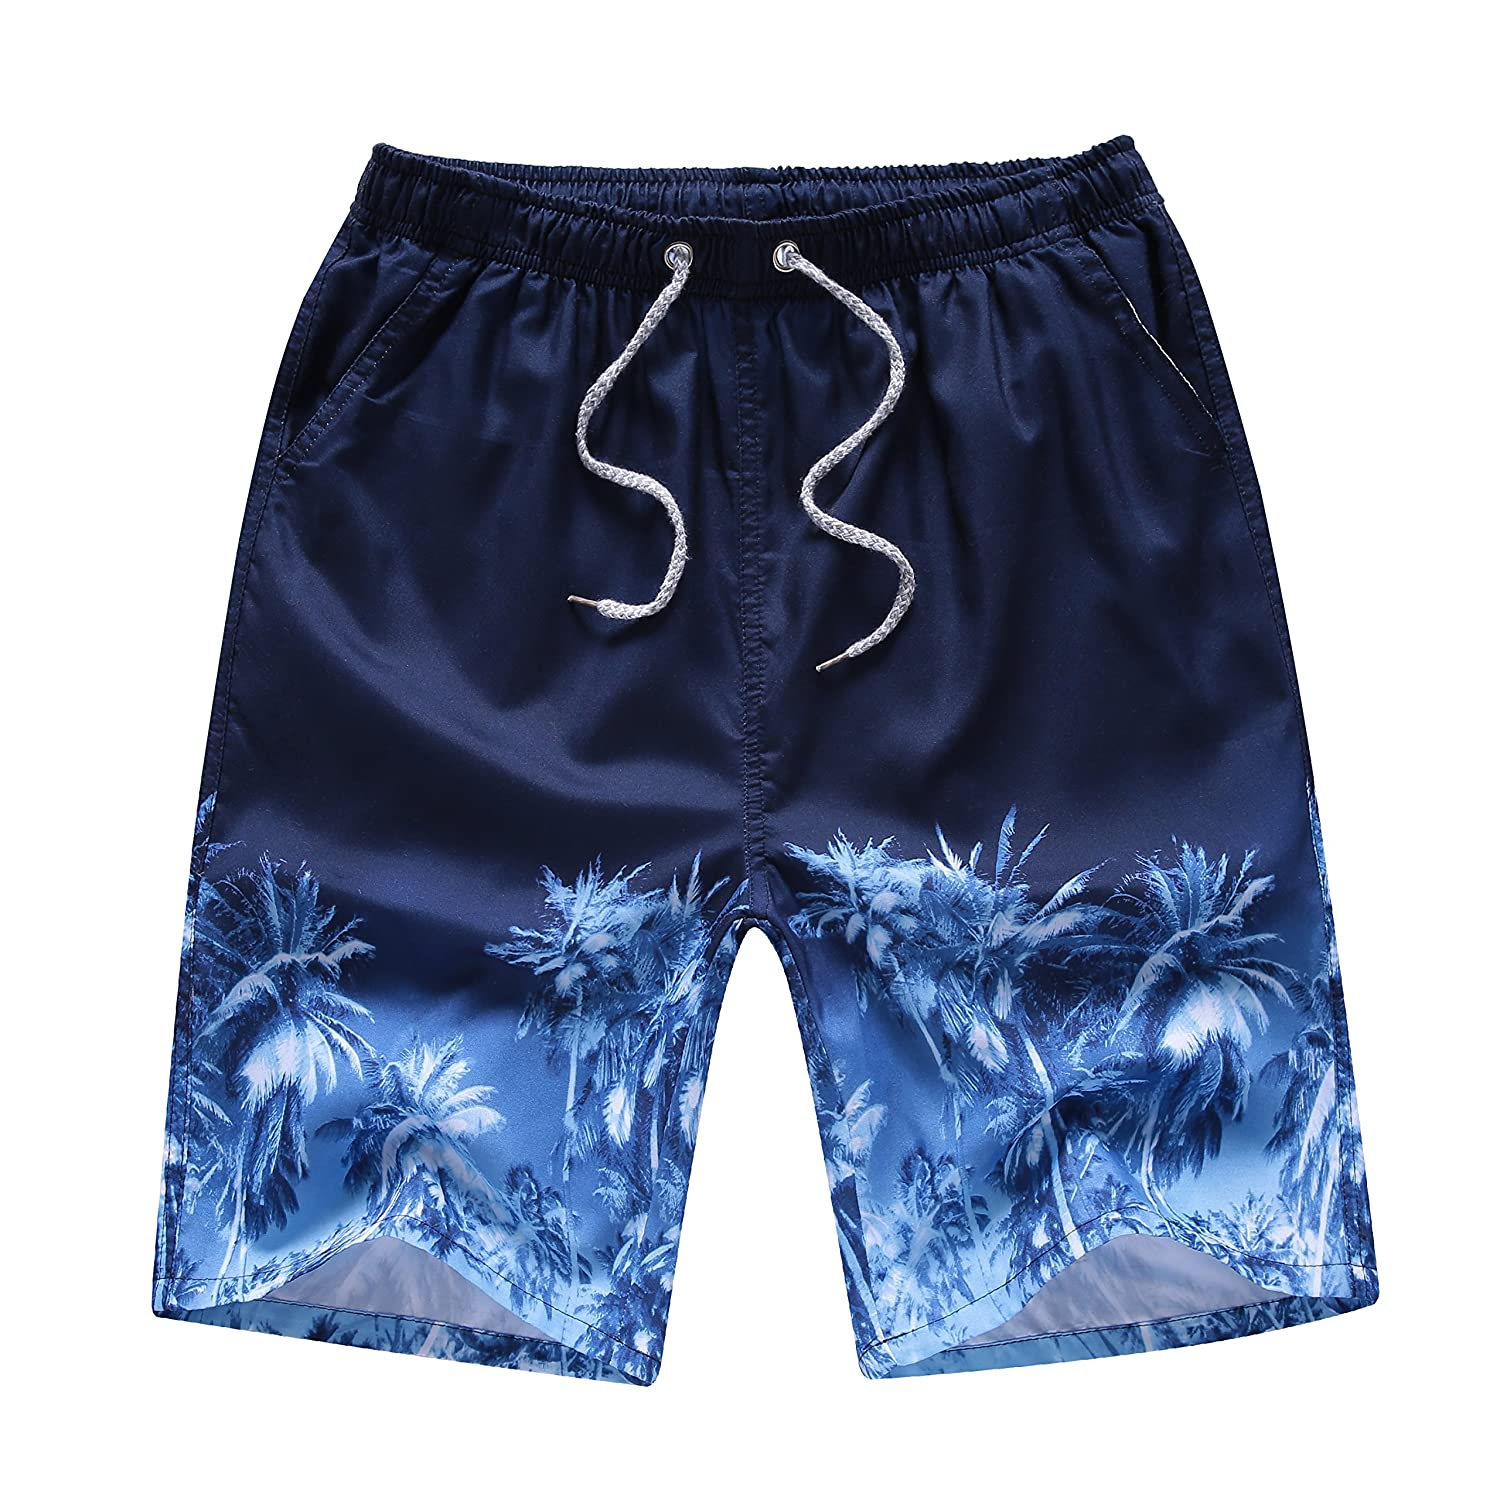 Newland Mens Printing Quick Dry Beach Board Shorts Swim Trunks Plus Size